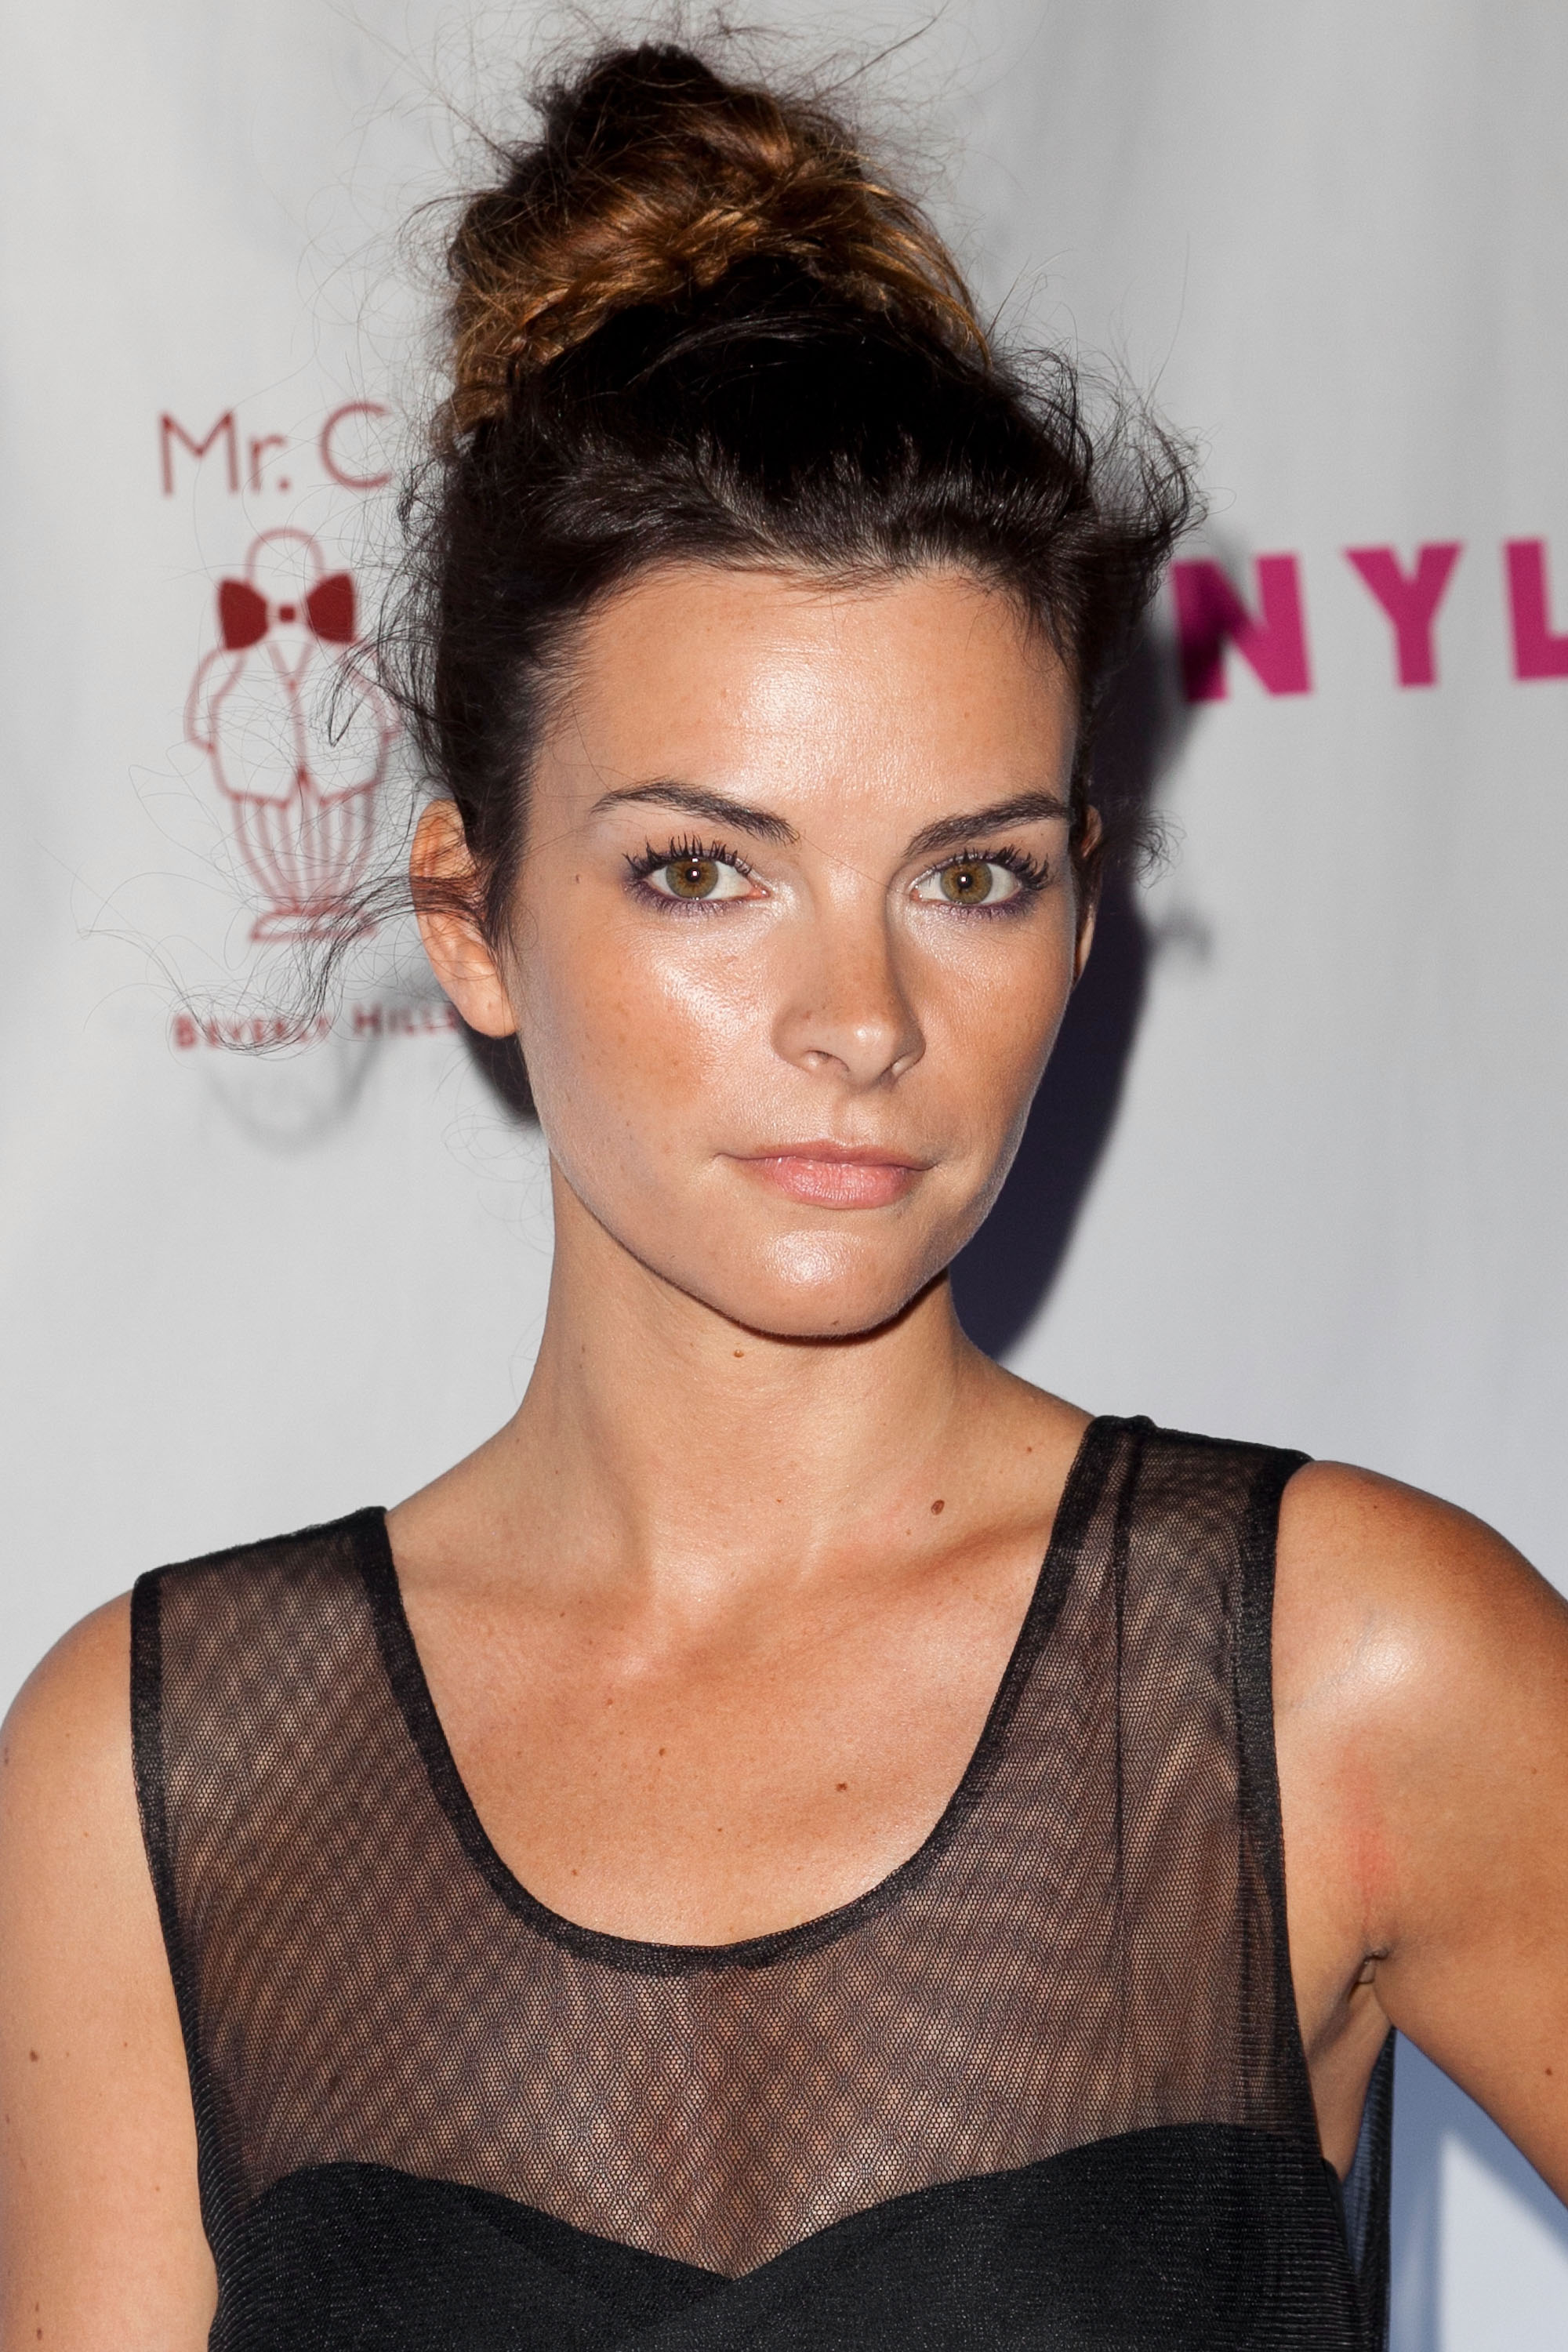 Kelly Oxford disaster artist